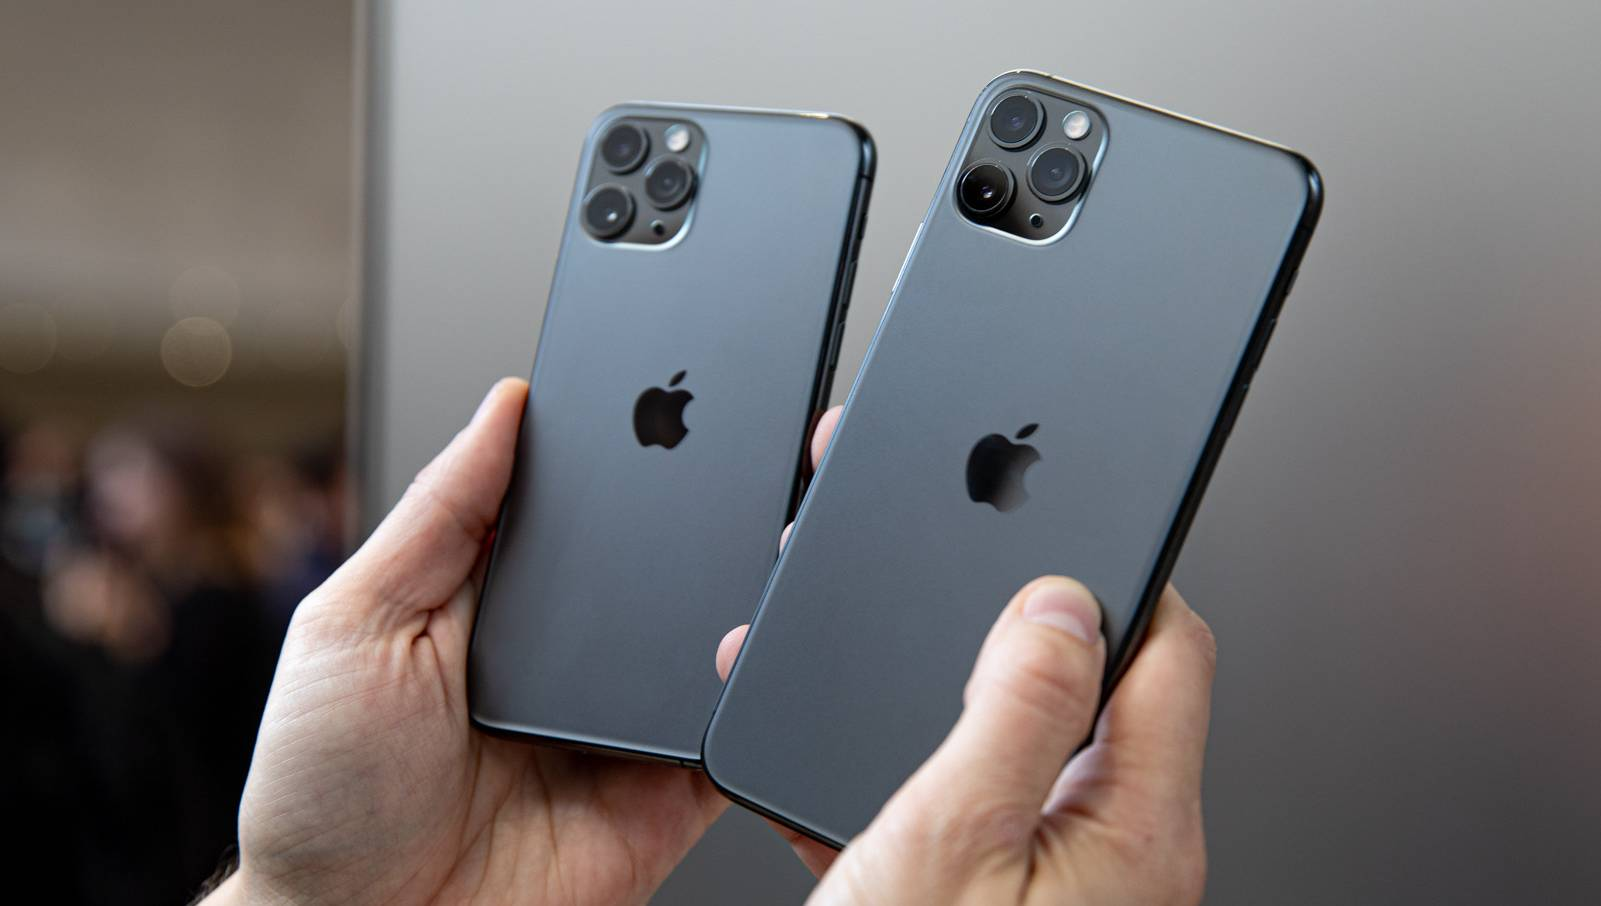 iPhone 11 DISTRUGE Huawei Samsung